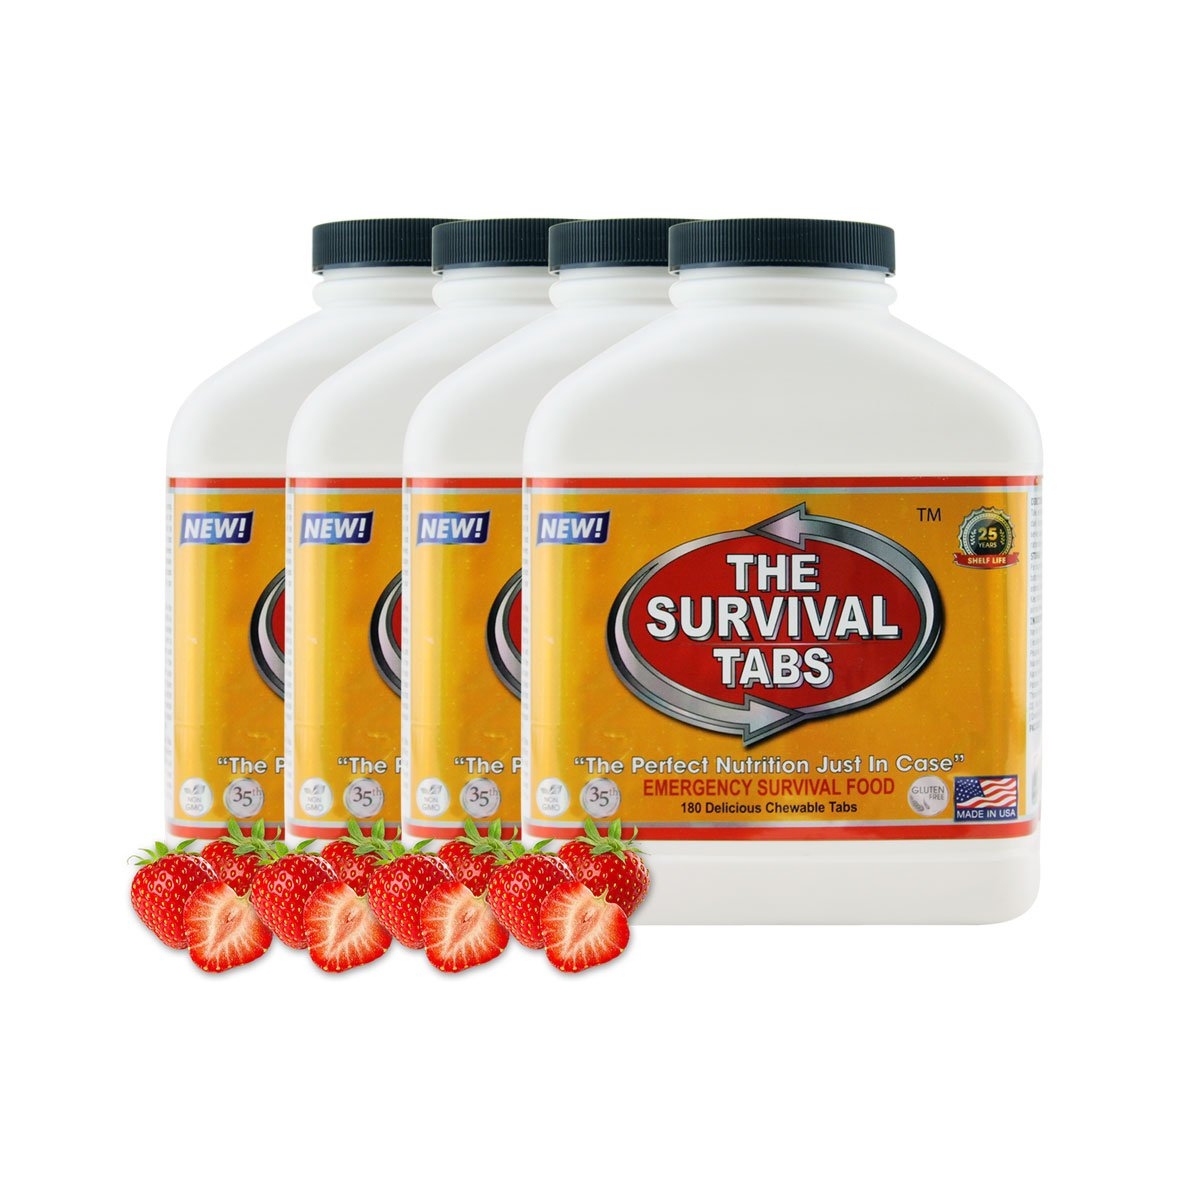 Survival Tabs 60-day Food Supply Emergency Food Ration 720 tabs Survival MREs for Disaster Preparedness for Earthquake Flood Tsunami Gluten Free and Non-GMO 25 Years Shelf Life - Strawberry Flavor by The Survival Tabs (Image #1)